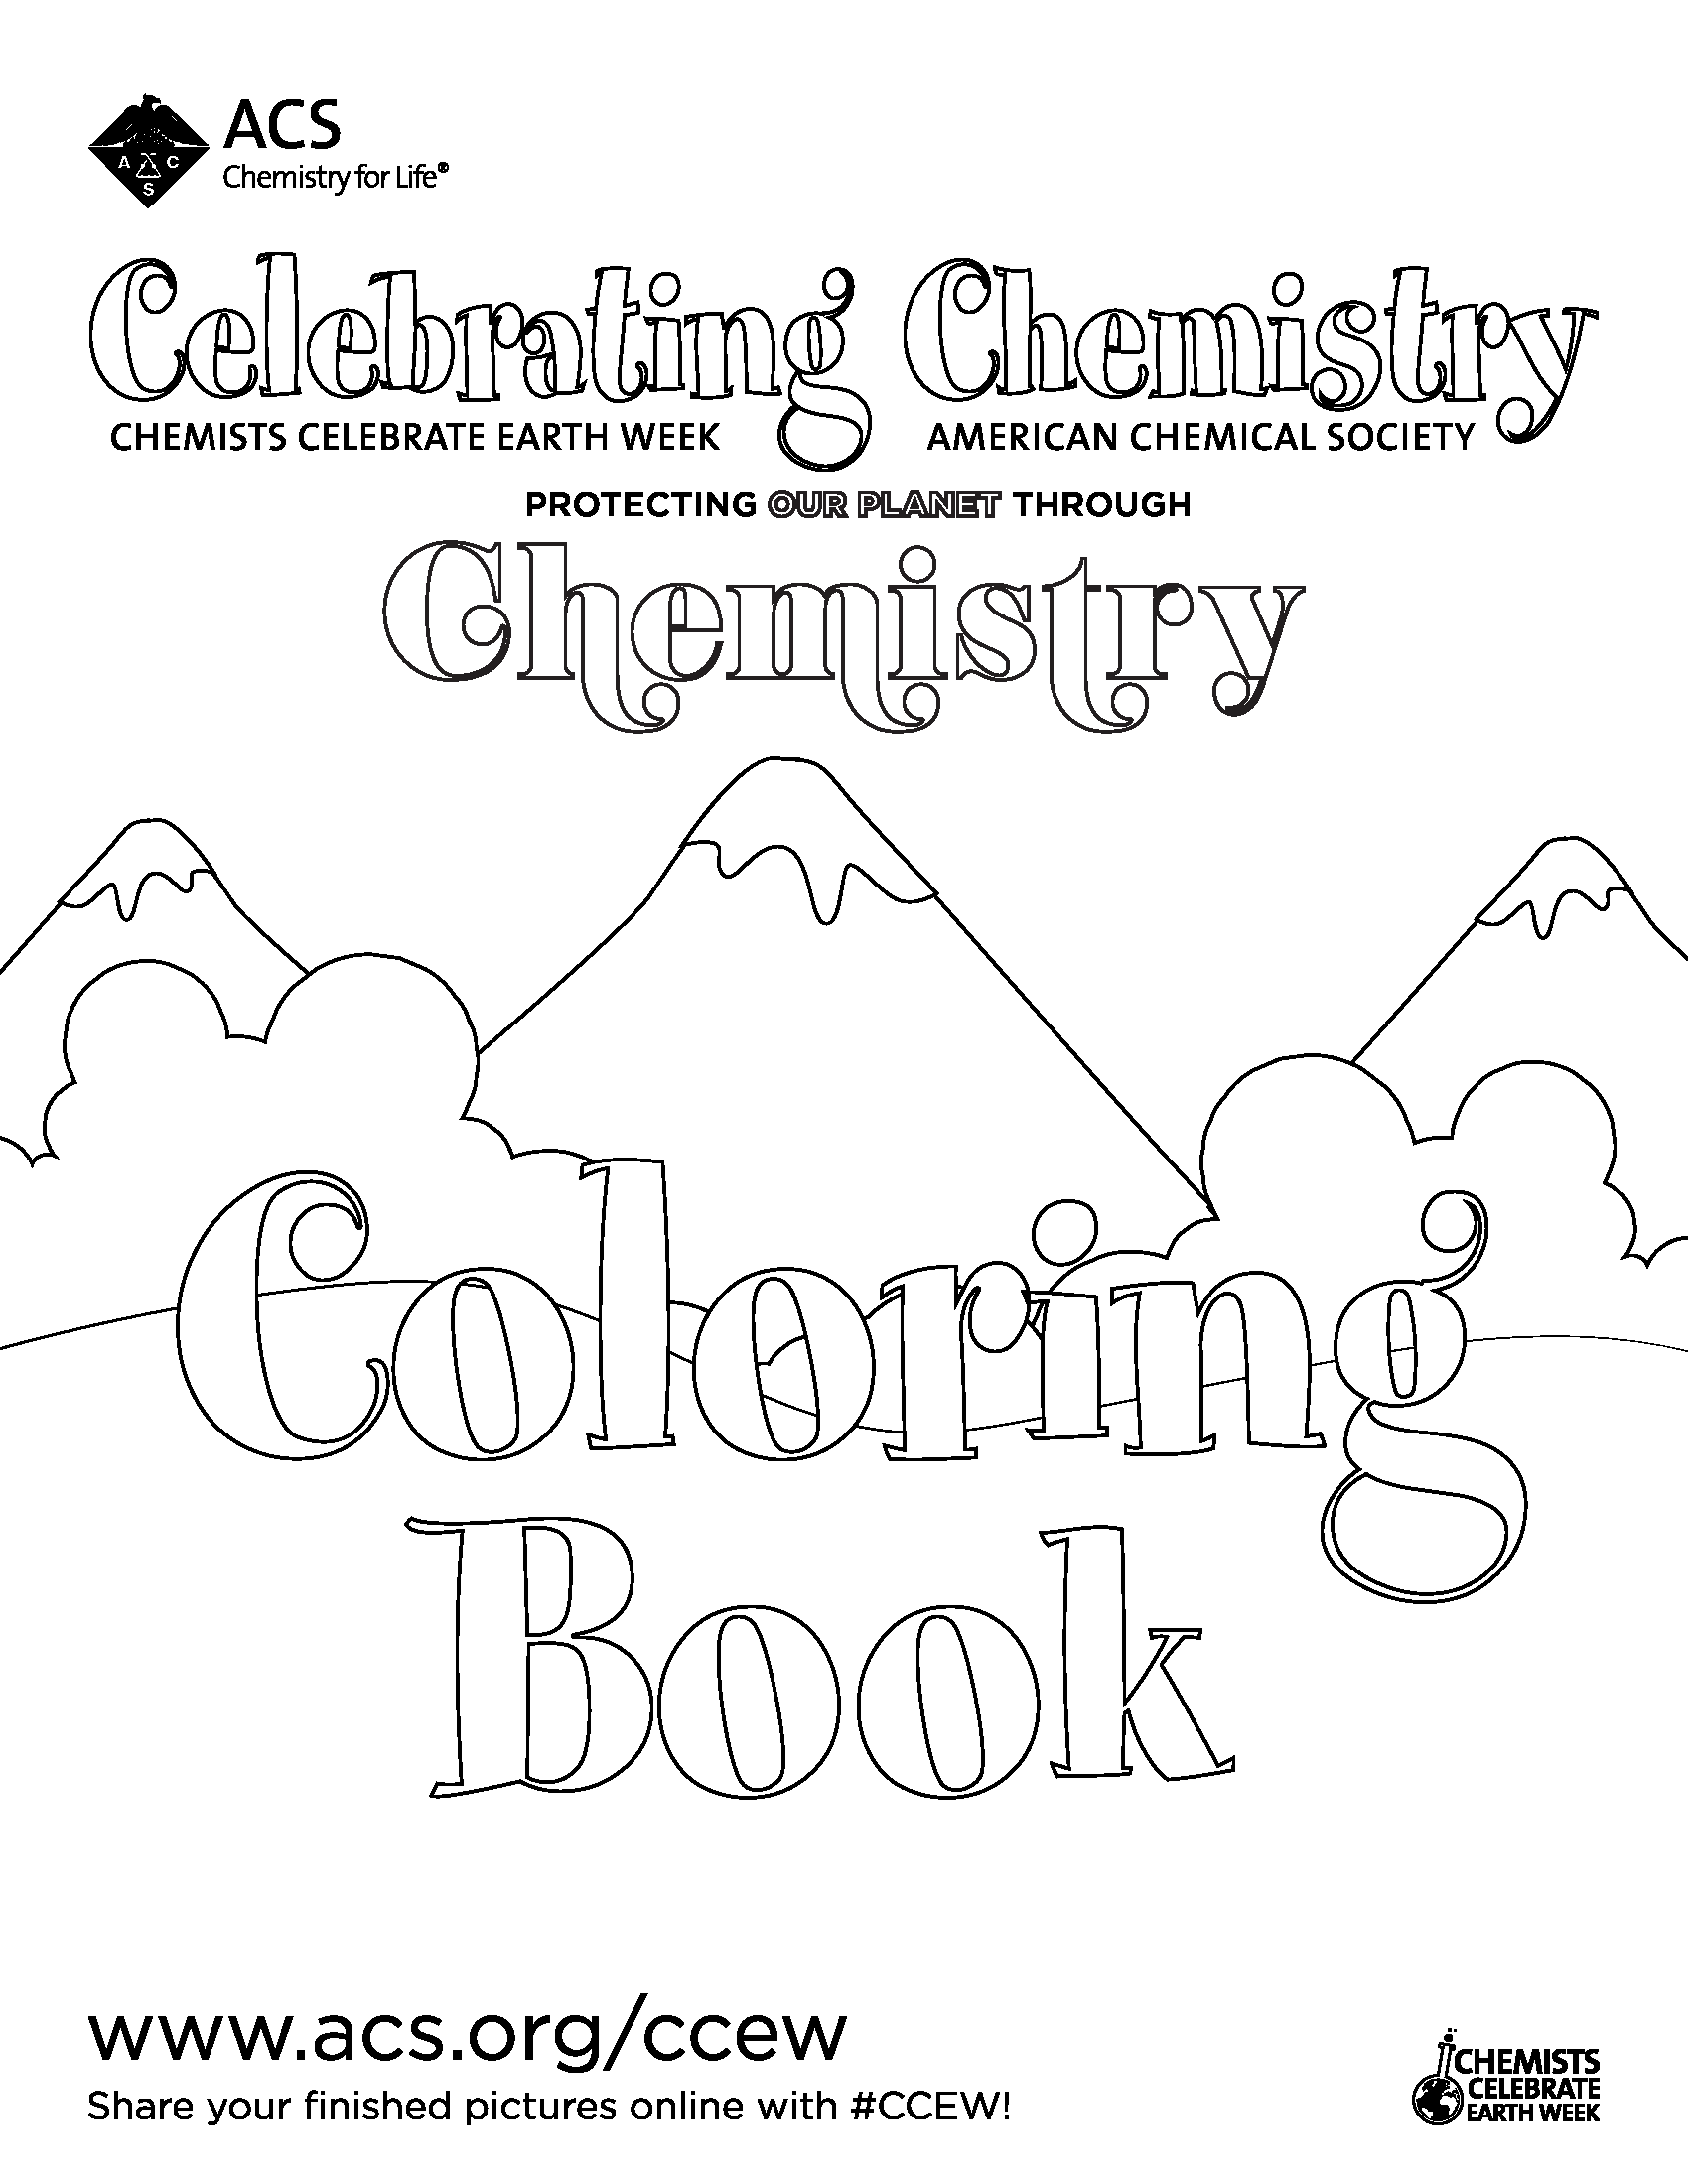 - CCEW 2020 Celebrating Chemistry Coloring Book - American Chemical